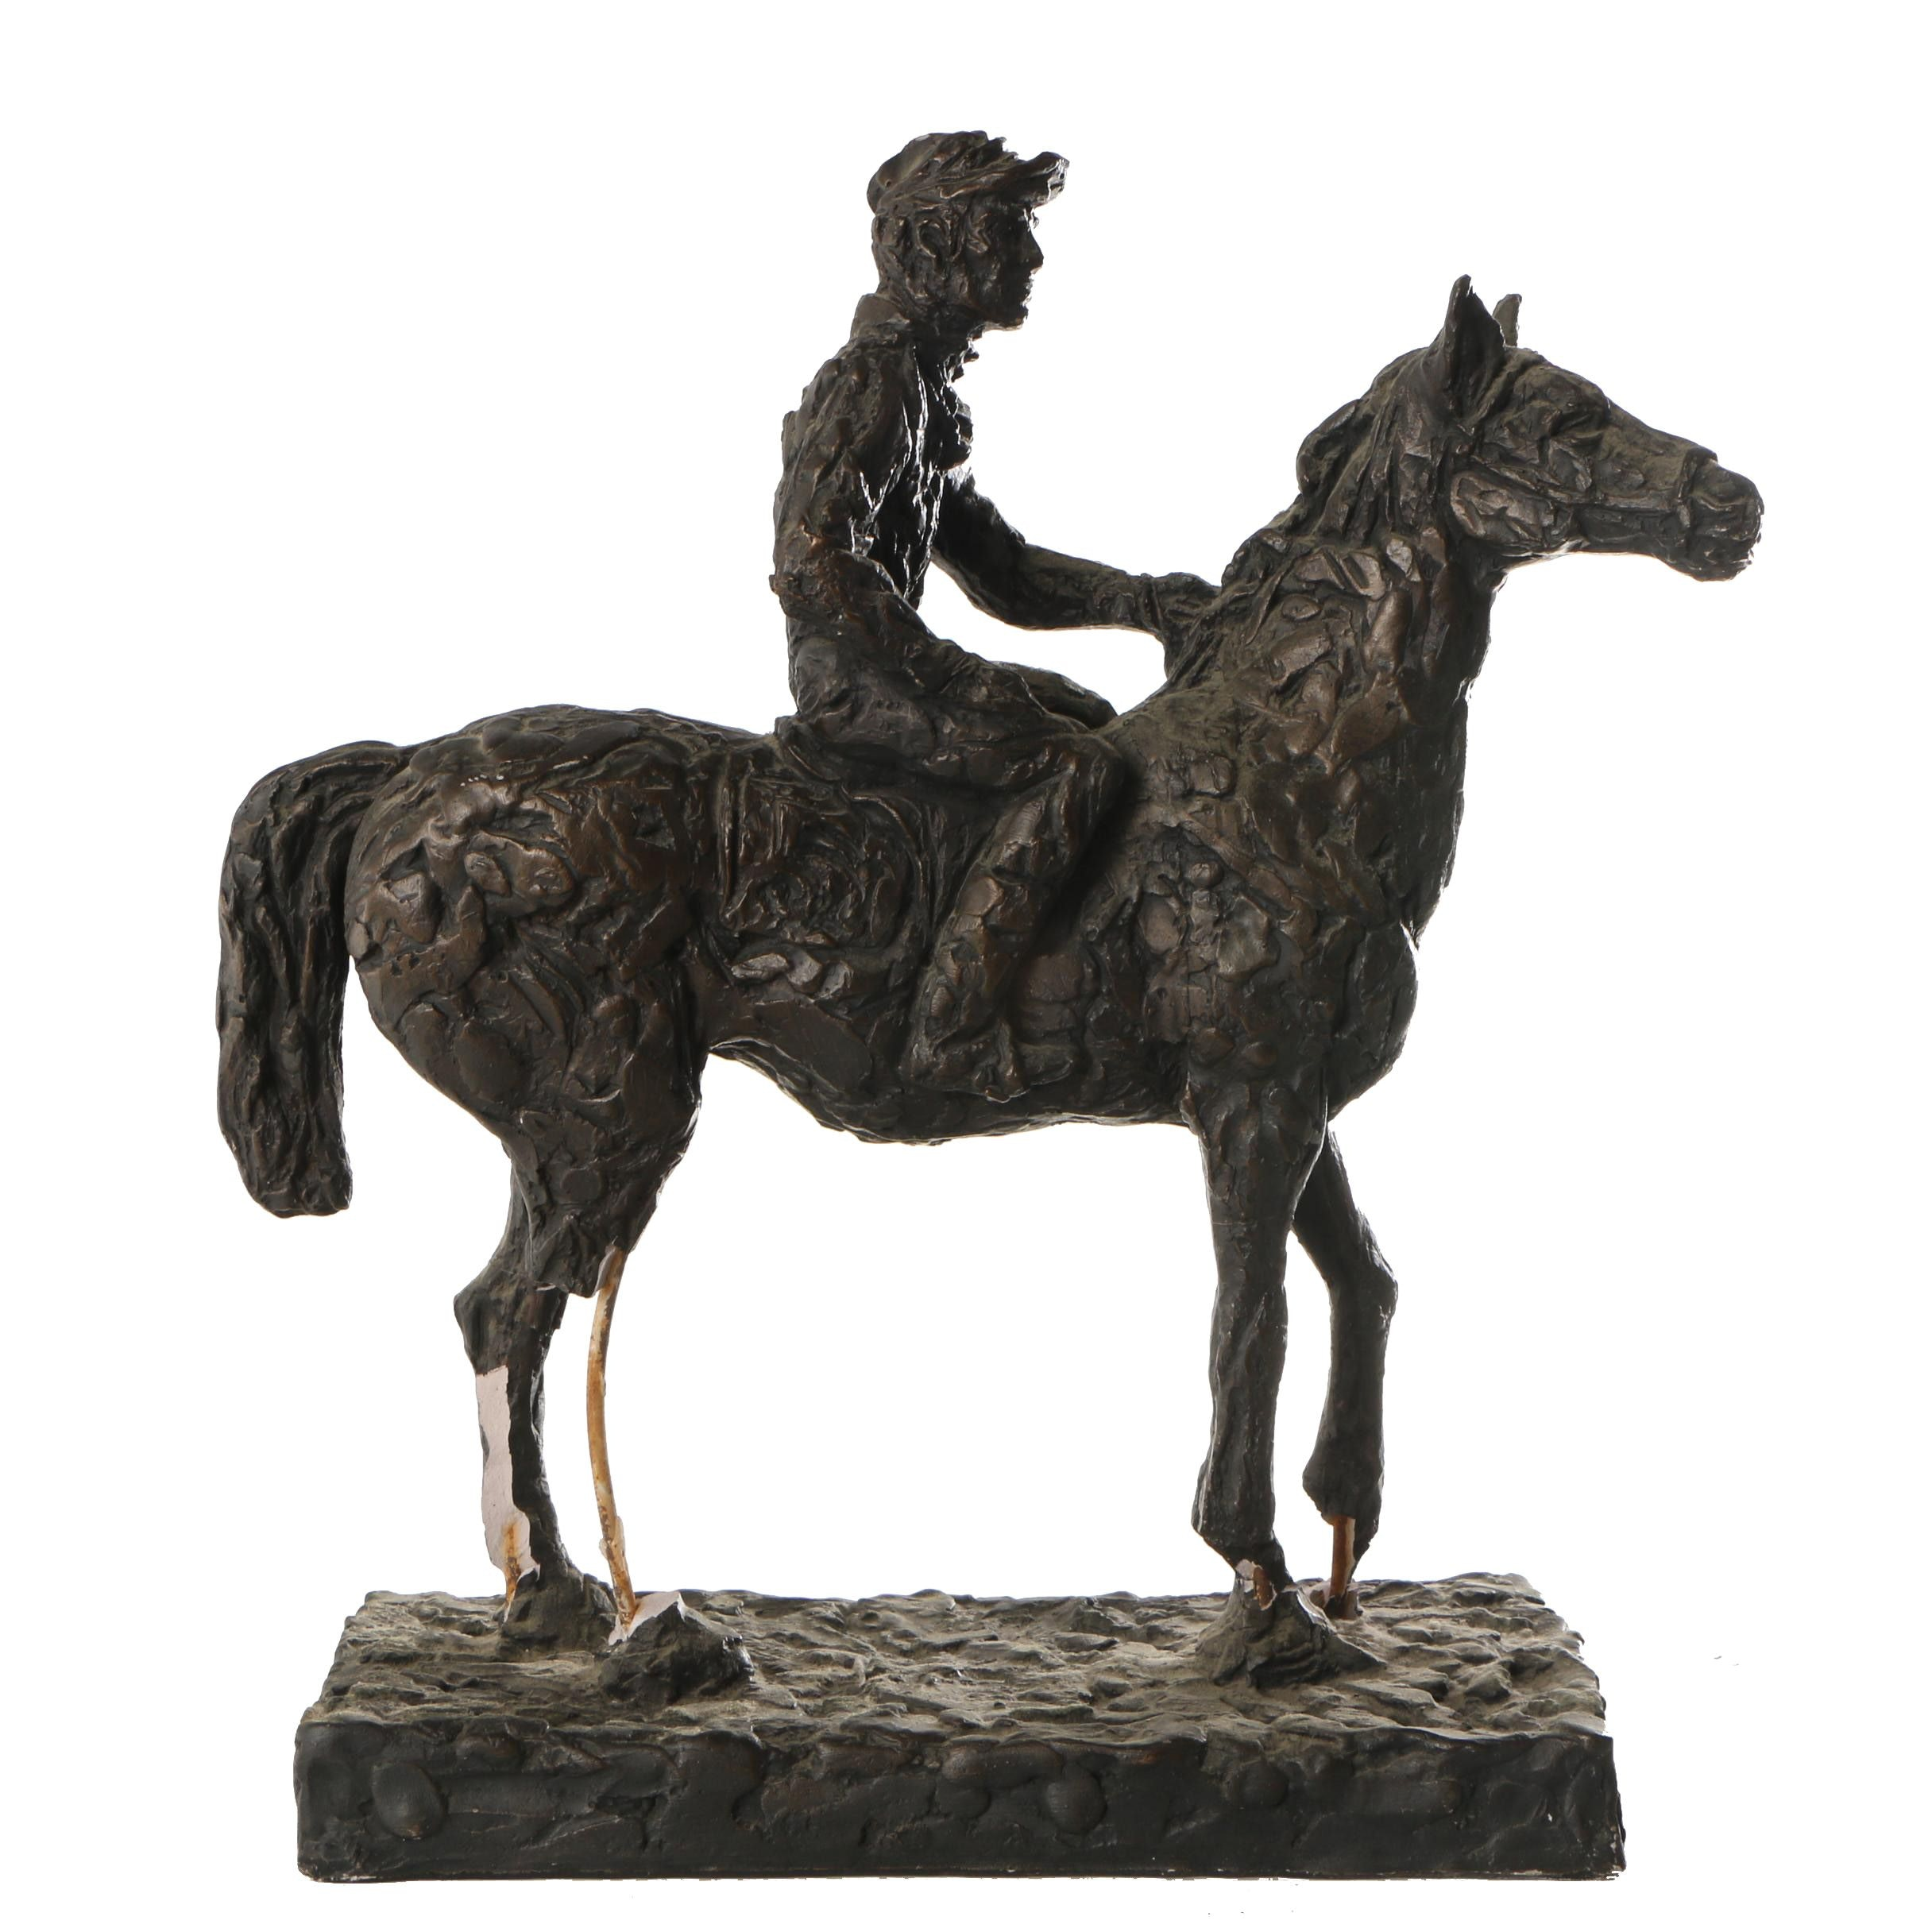 Austin Productions Plaster Sculpture of a Horse and Rider